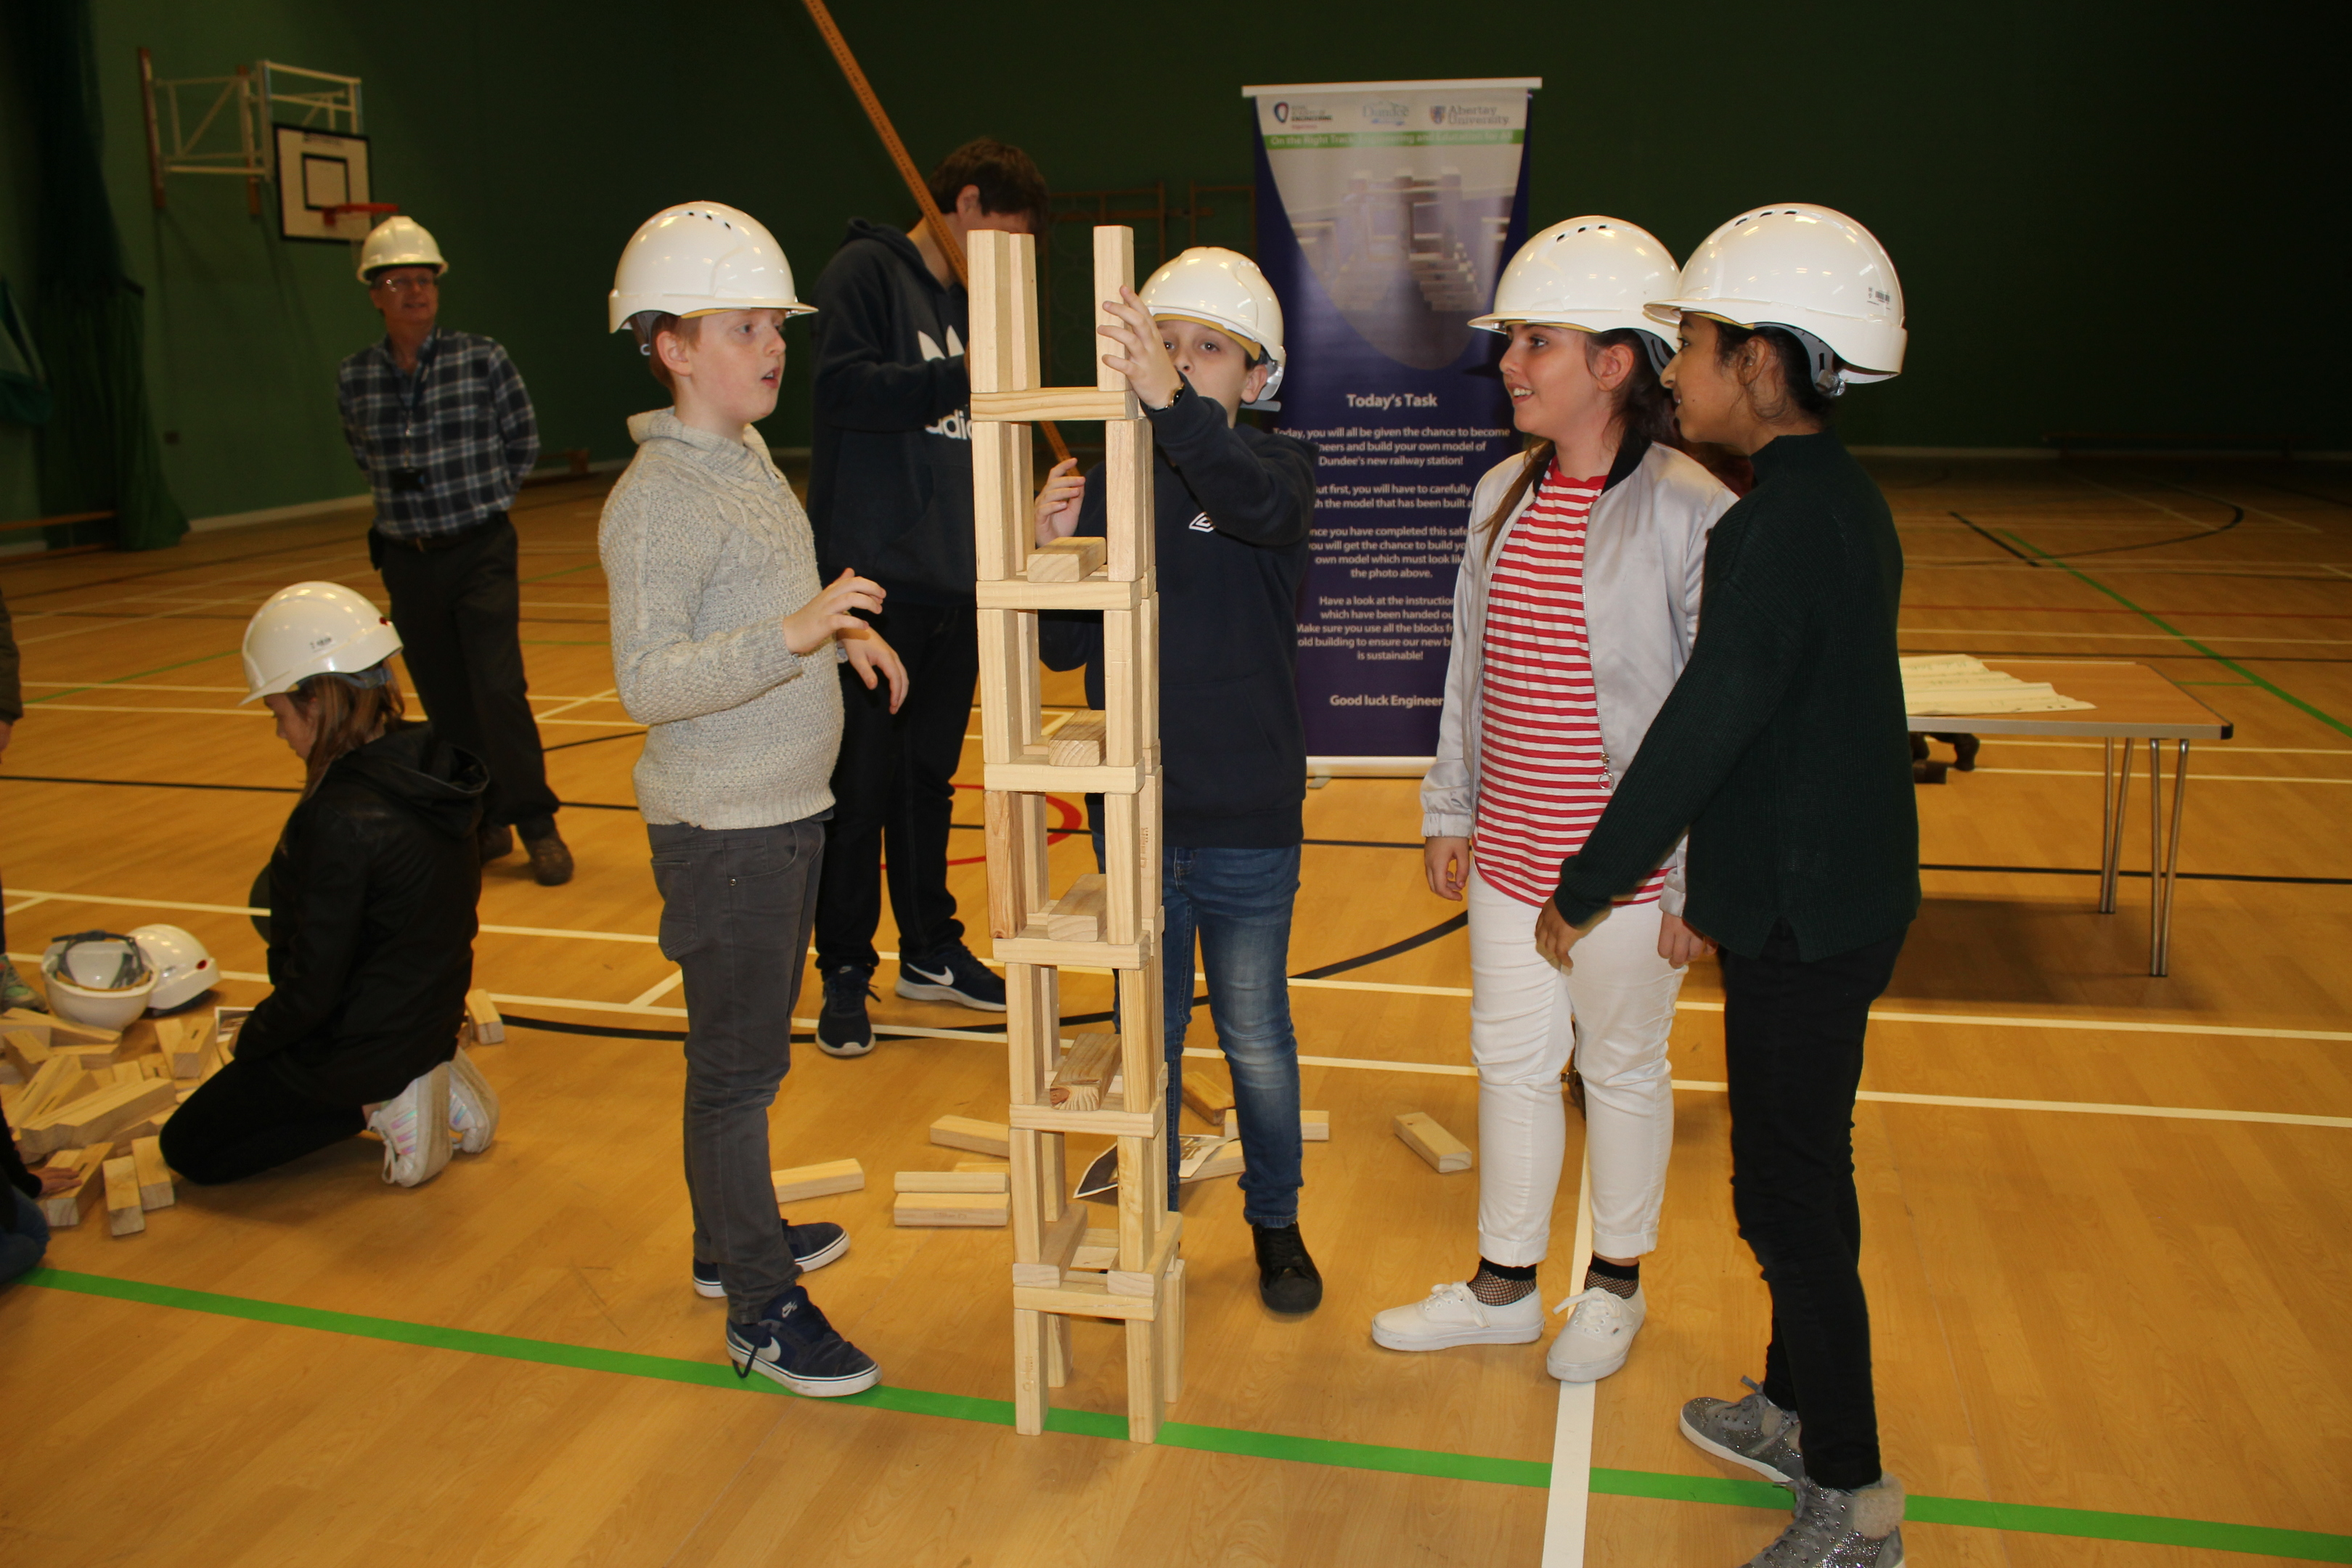 Children from St Peter and Paul's Primary School taking part in the infrastructure project (tower building) during Fife Science Festival at Craigowl PS